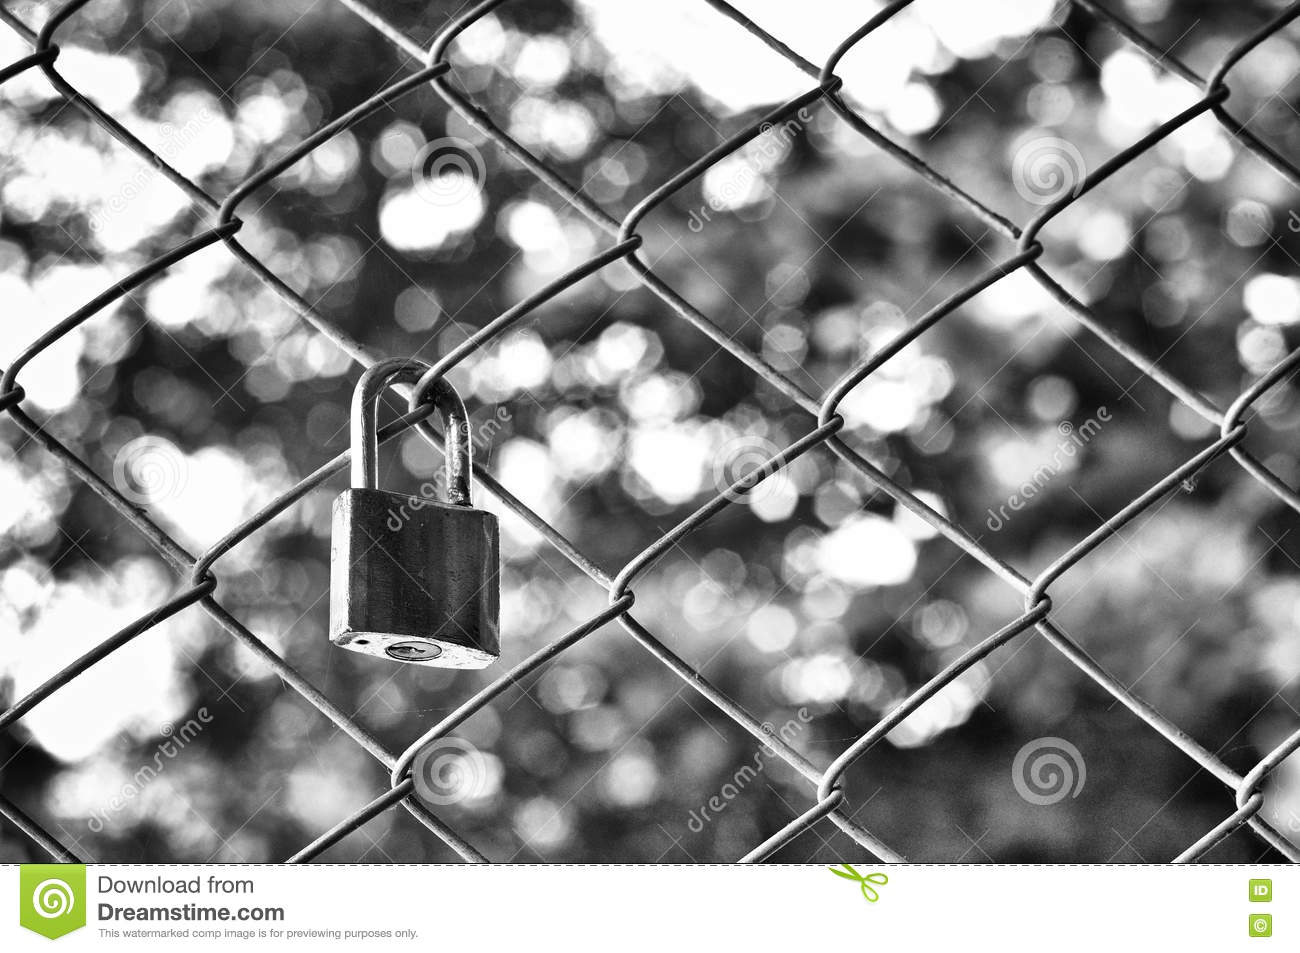 Old padlock with metal mesh fence with bokeh background in black and white photography